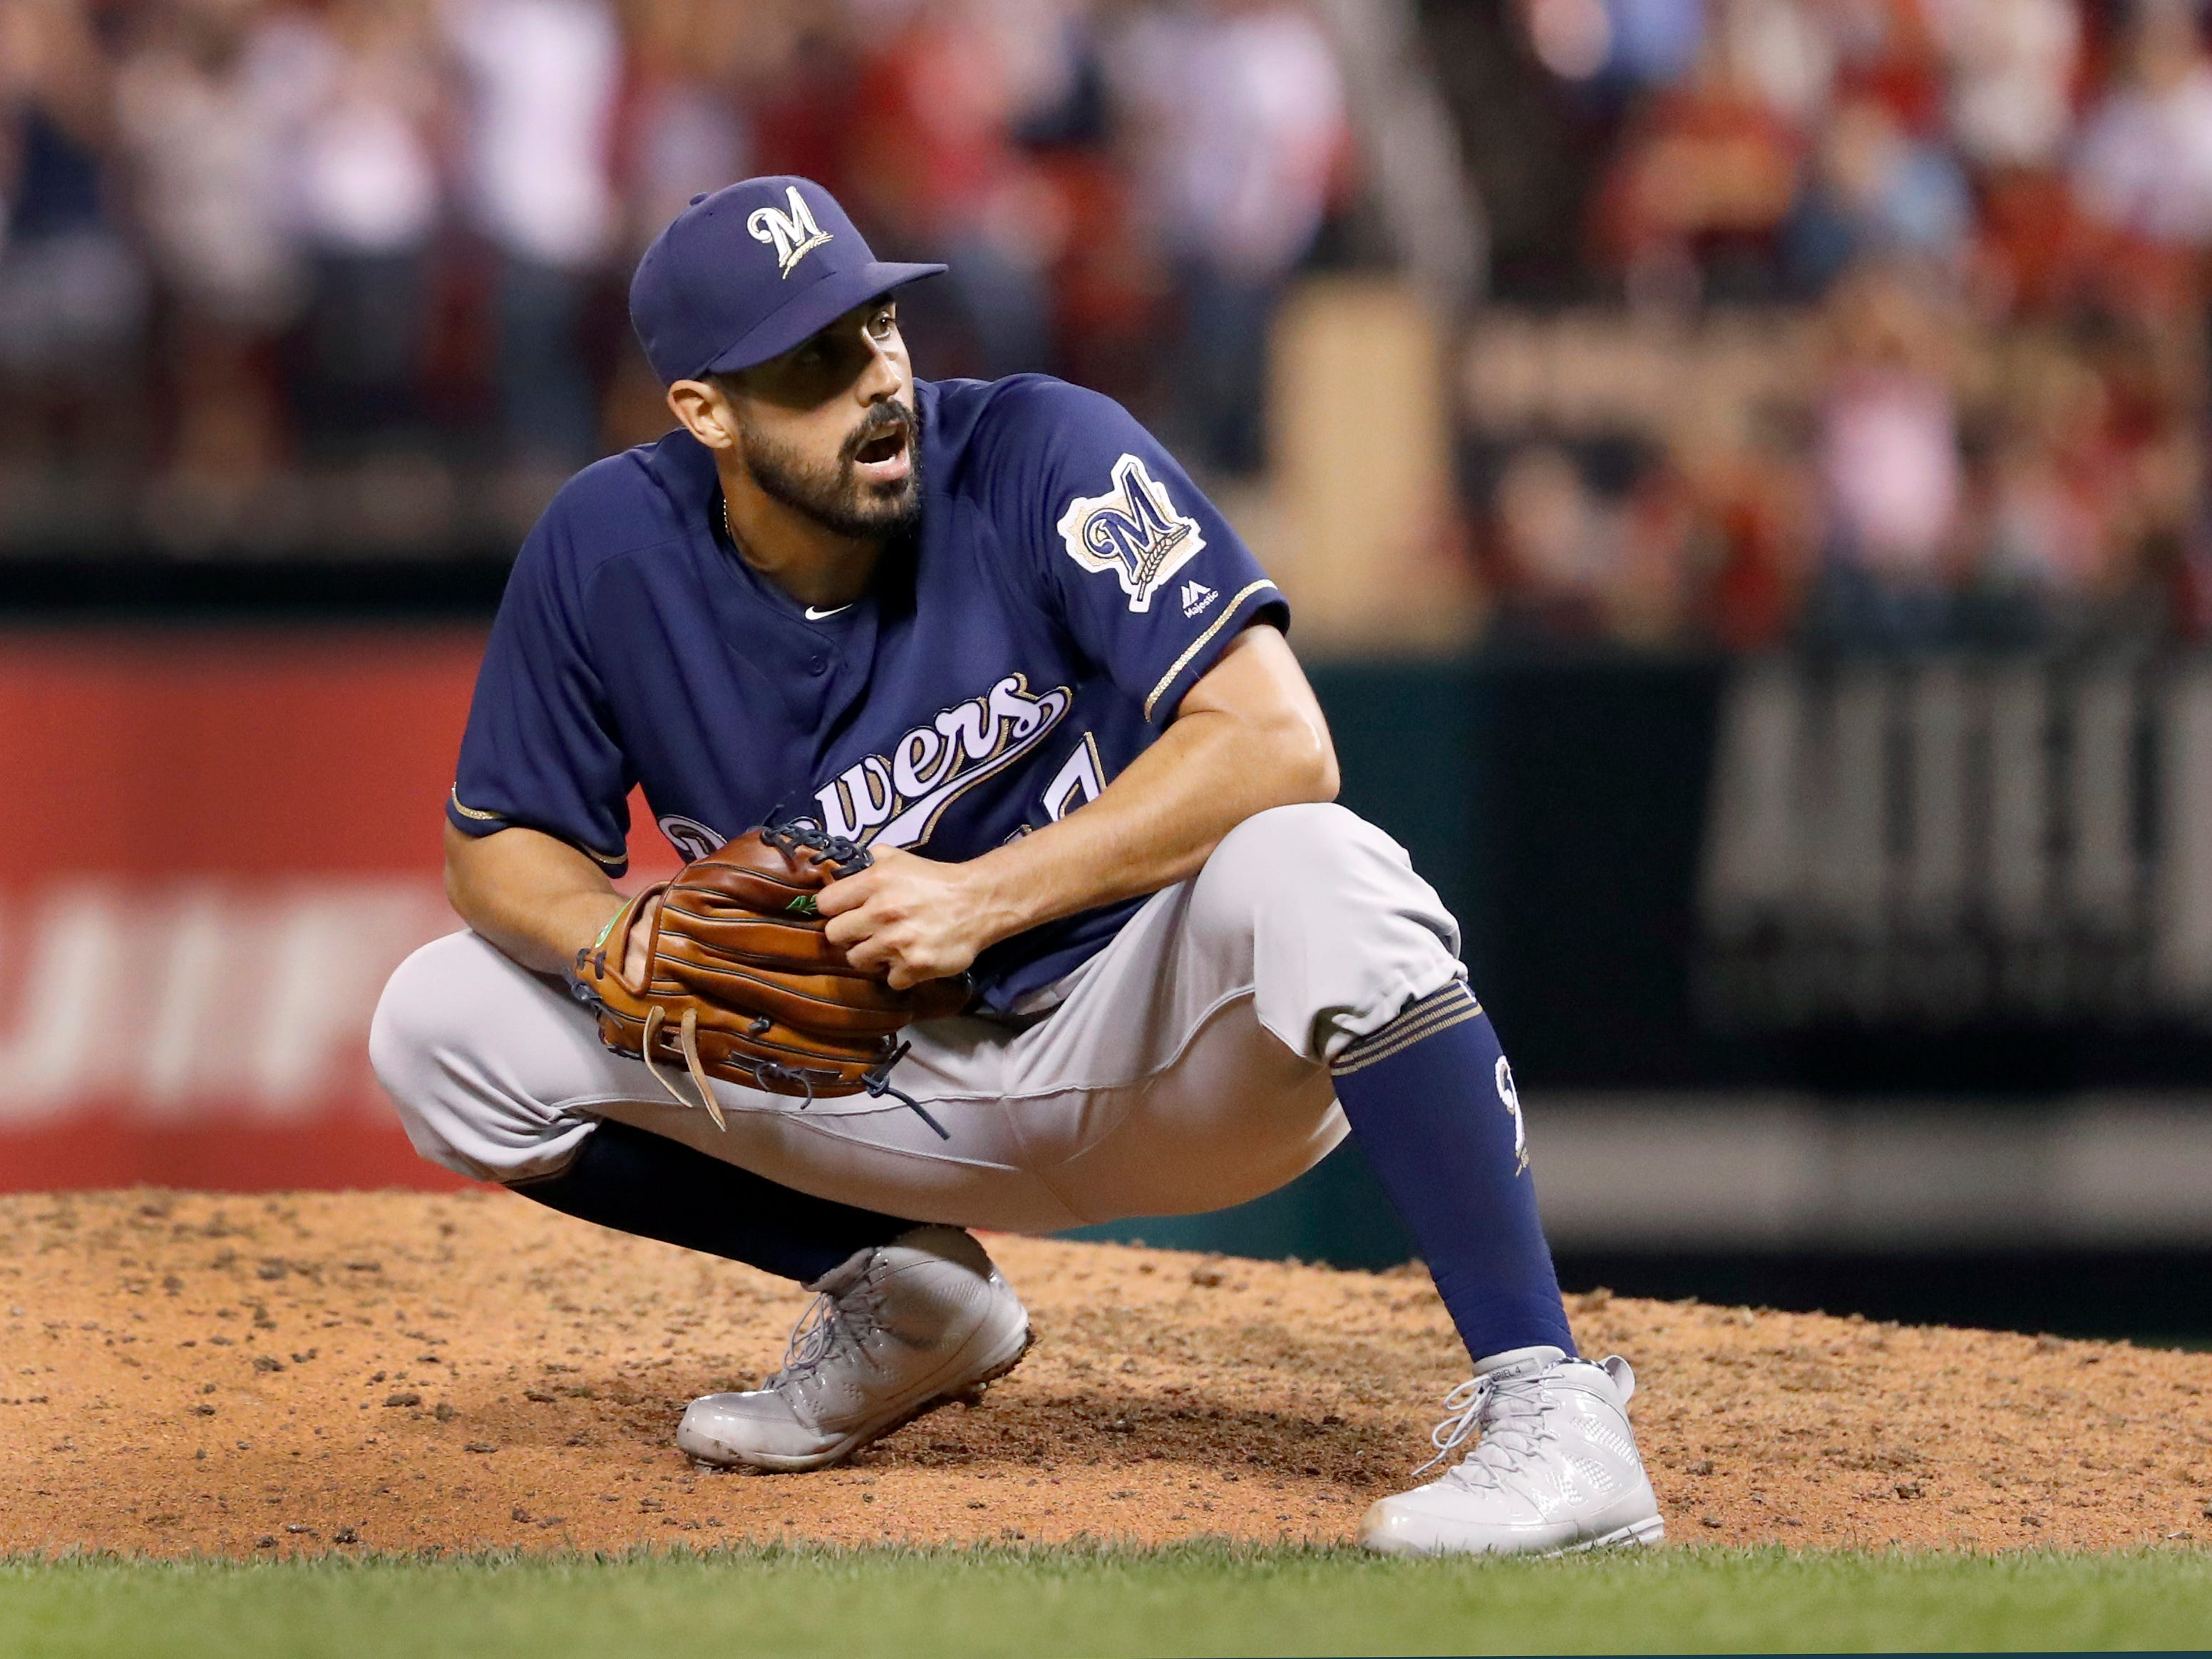 22. Gio Gonzalez, SP, 33: The left-hander was pretty mediocre with the Nationals, but found his groove again in his month with the Brewers. So that should pique clubs' interest. Prediction: White Sox, four years, $52 million